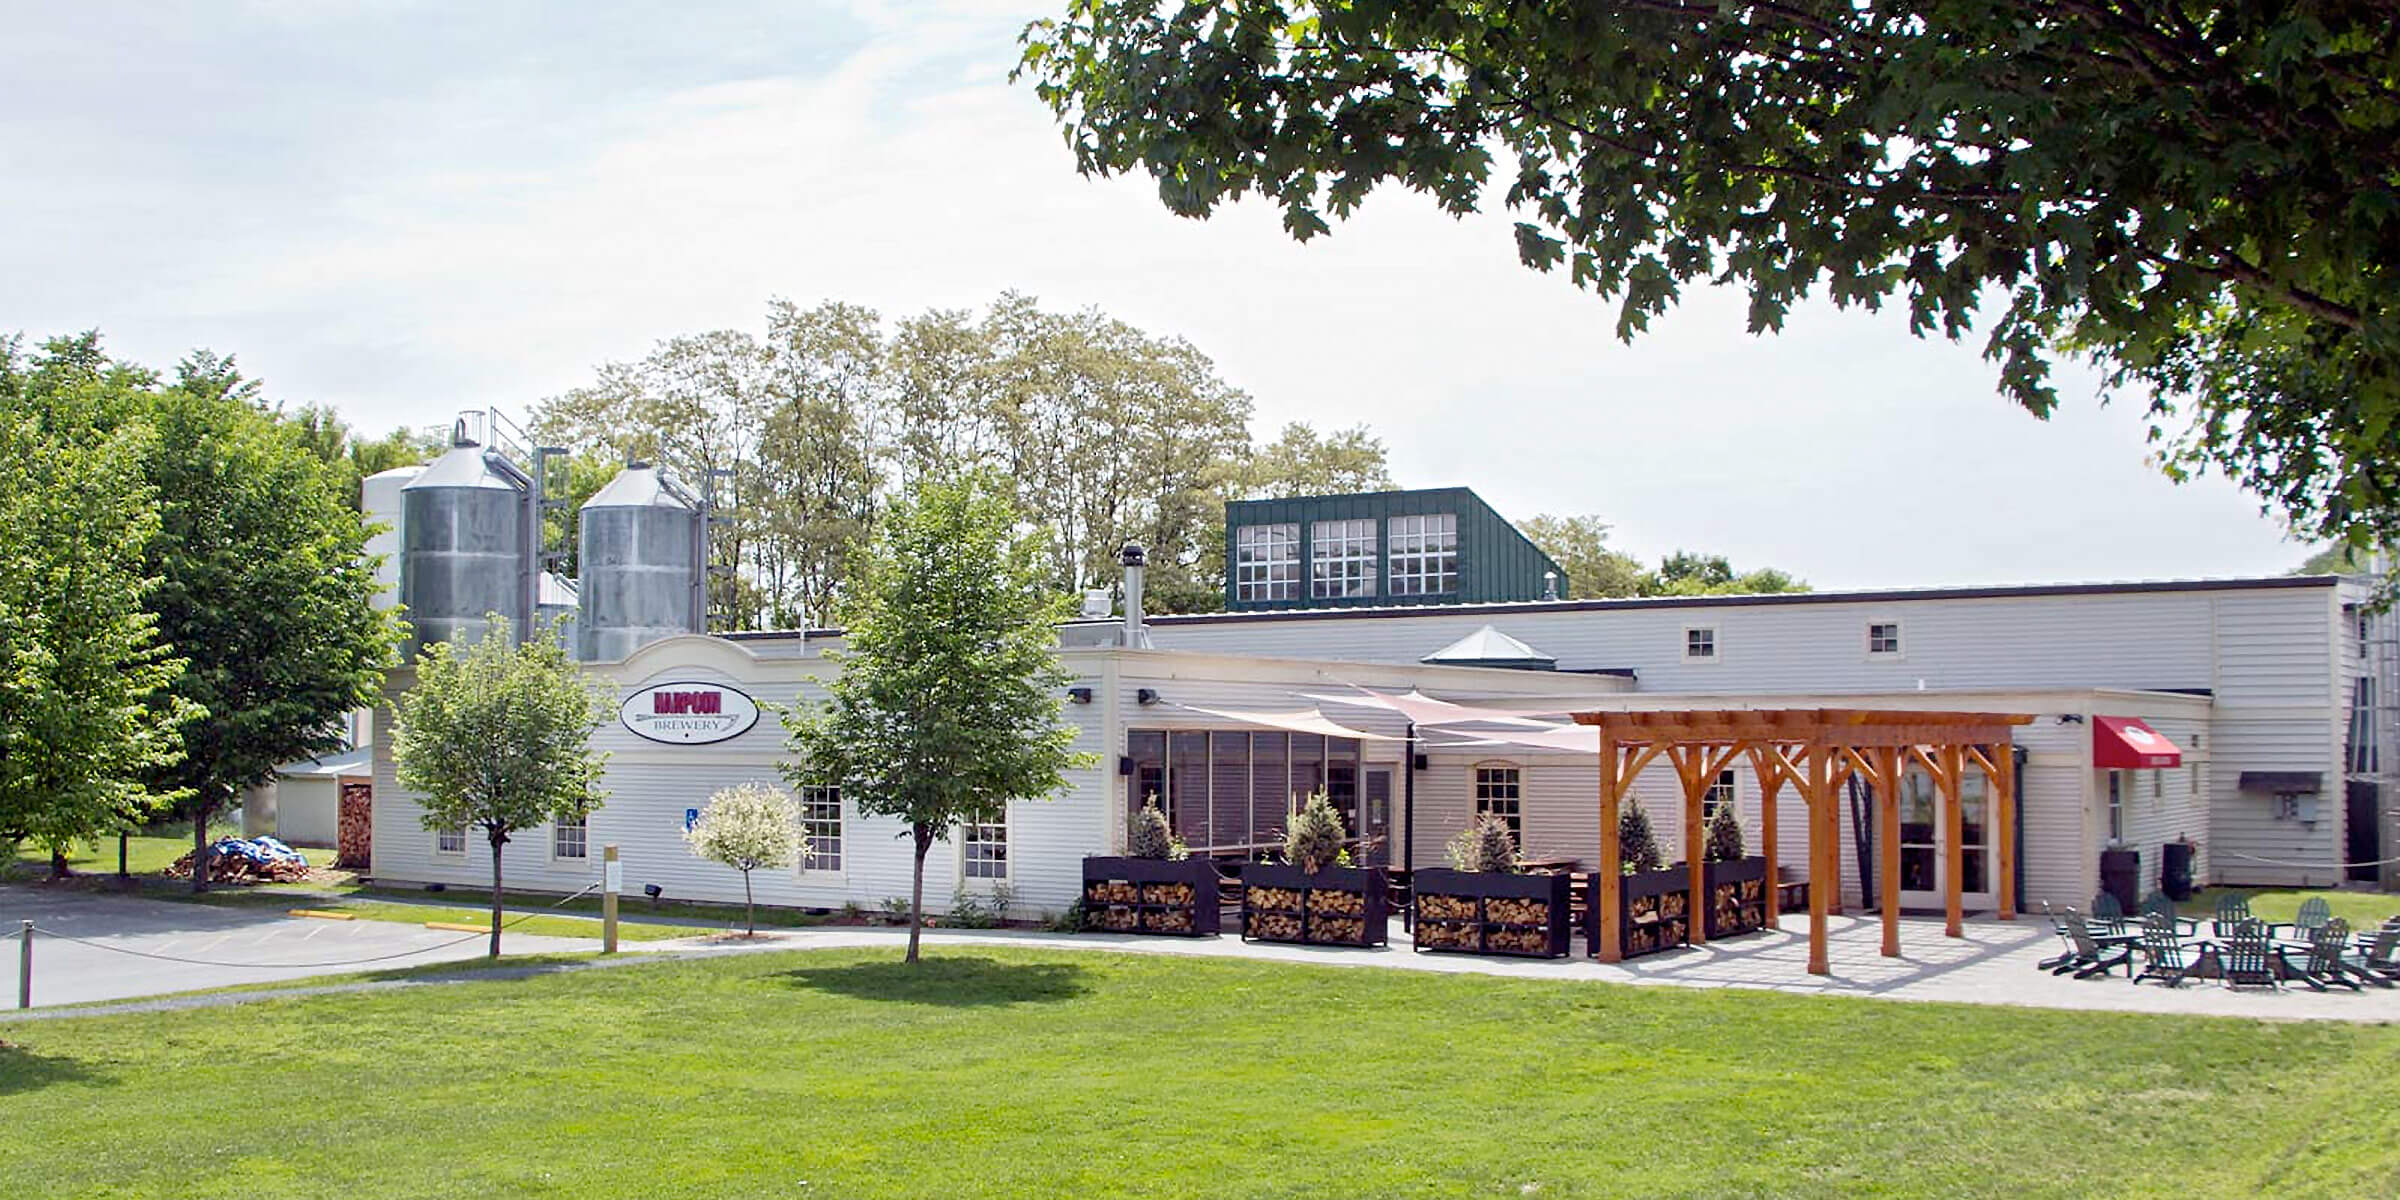 Outside the Beer Hall at Harpoon Brewery in Windsor, Vermont